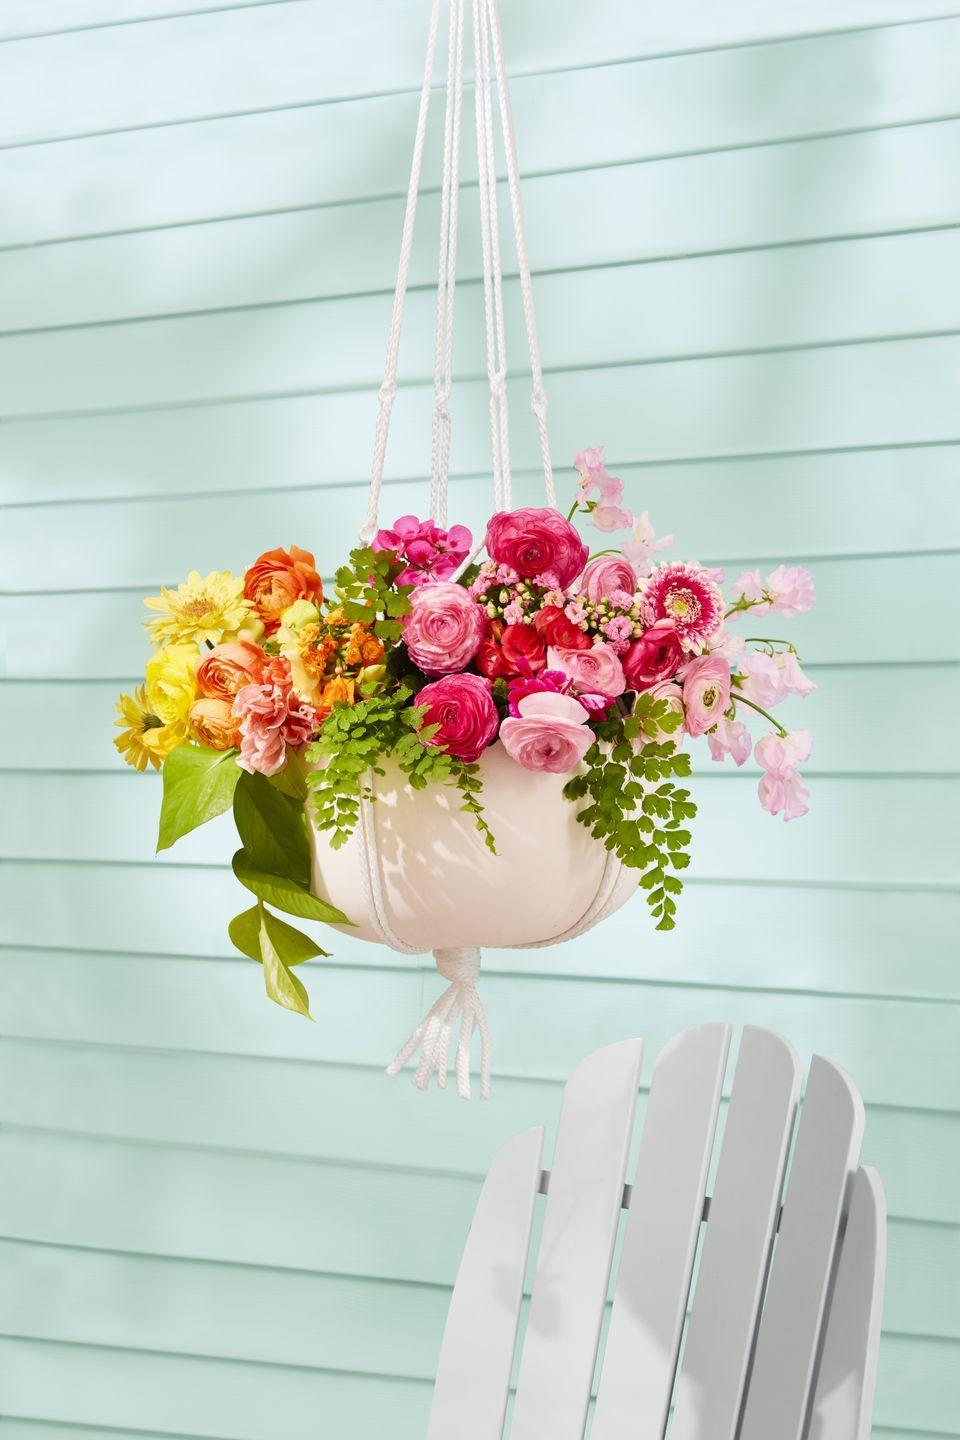 """<p>Instantly boost your home's curb appeal with <a href=""""https://www.goodhousekeeping.com/home/gardening/g2503/surprising-flower-meanings/"""" rel=""""nofollow noopener"""" target=""""_blank"""" data-ylk=""""slk:bright blooms"""" class=""""link rapid-noclick-resp"""">bright blooms</a> on each side of your front door. Expecting guests? Steal these tricks<br>from our home team: Add stems from a supermarket bouquet for extra fullness and mint for a fragrant burst.</p>"""